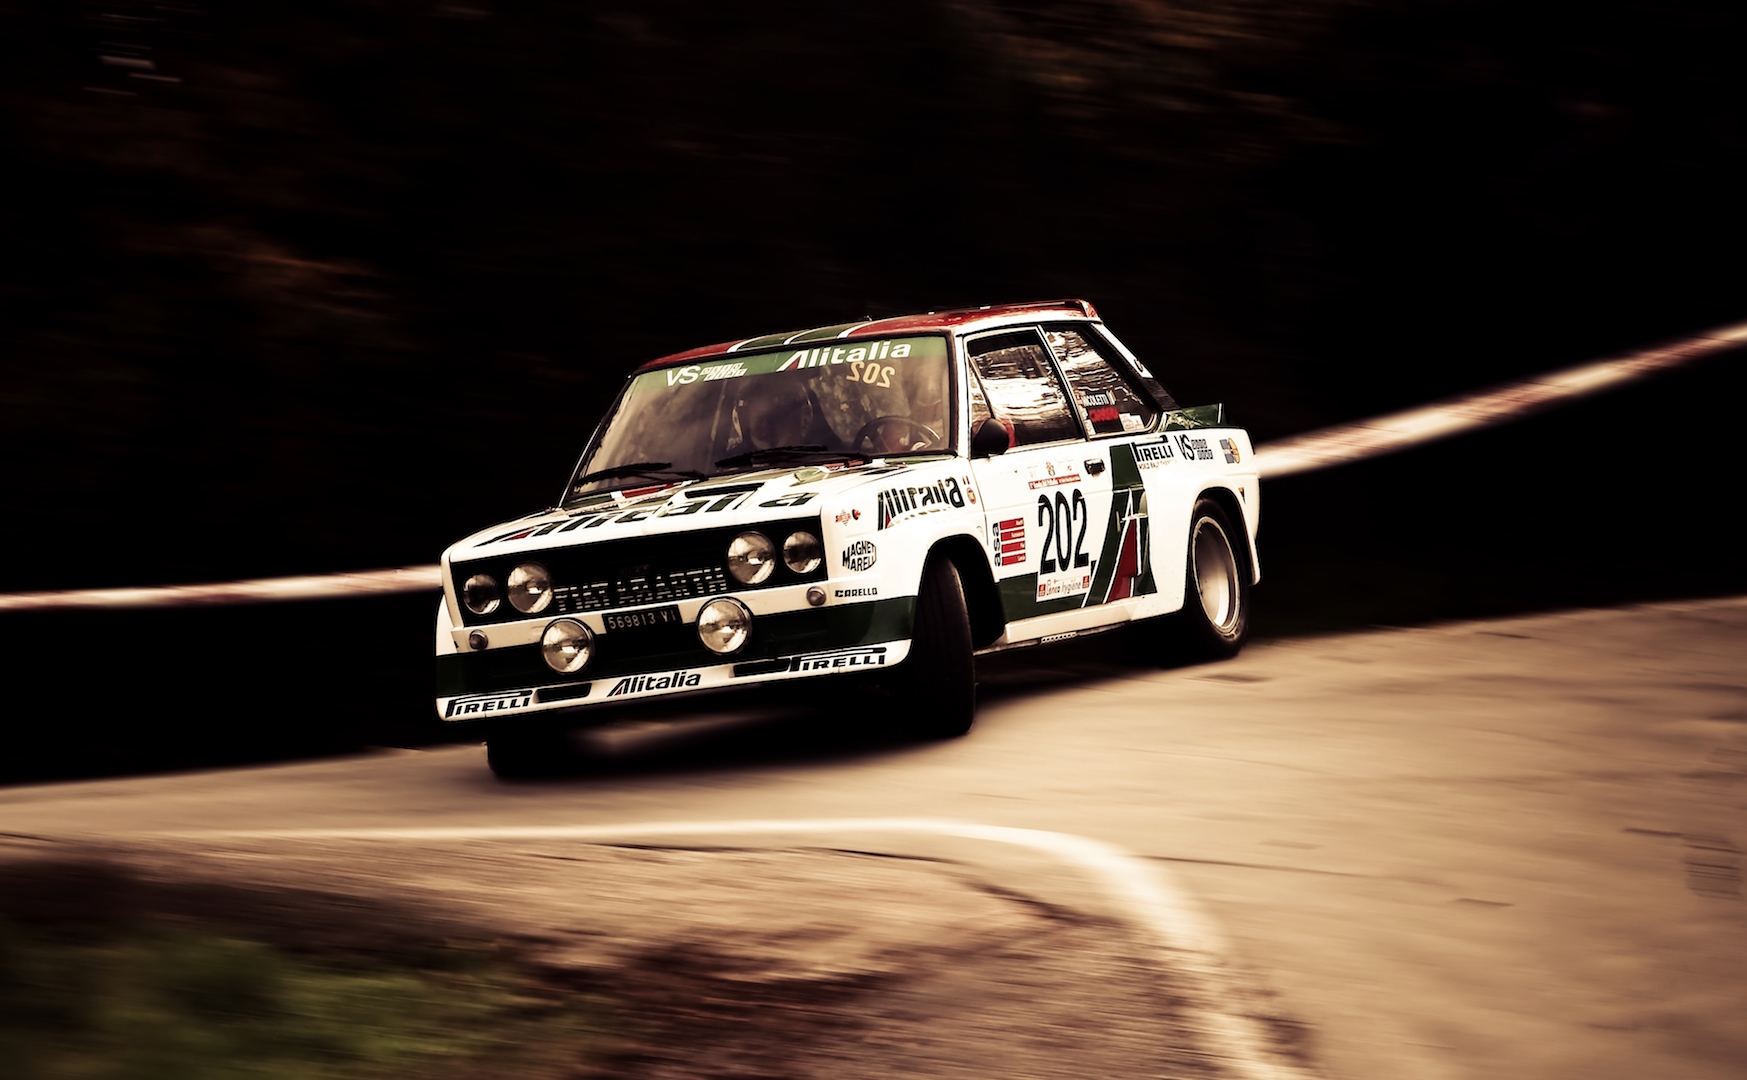 The Escort might be better known on this side of the channel, yet the 131 Abarth was the more successful rally car